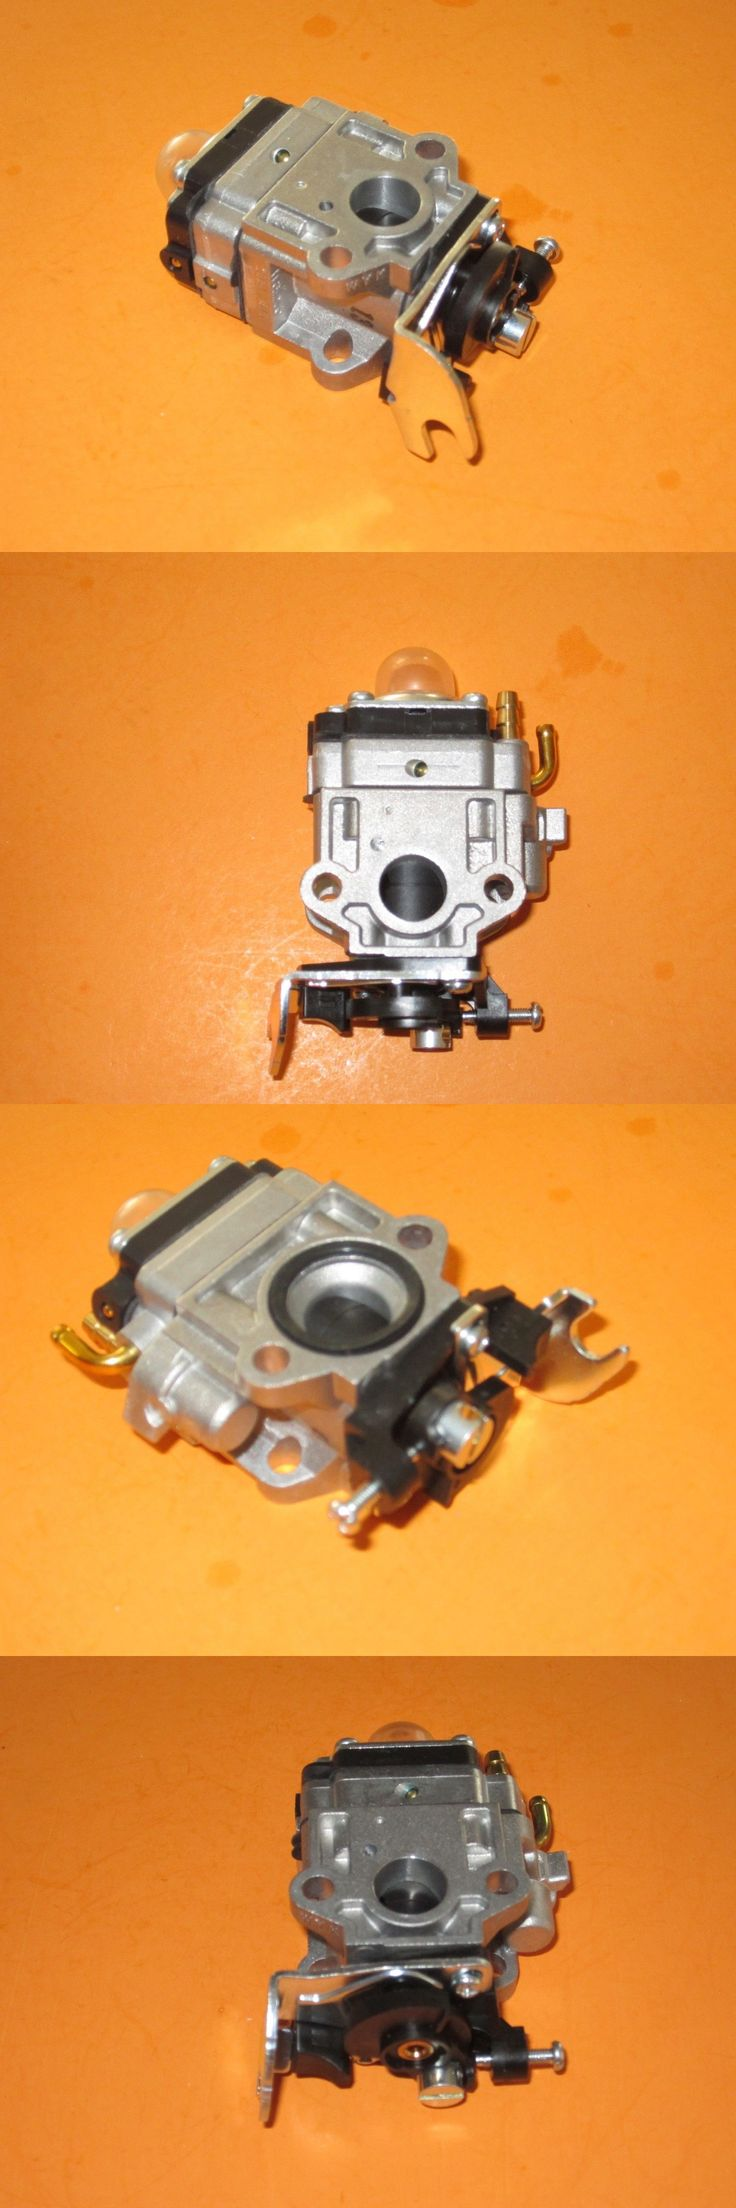 Other Outdoor Power Equipment 29520: Genuine Walbro Carburetor Wyk-233 For Echo Srm-280, 21001340 -> BUY IT NOW ONLY: $32.88 on eBay!